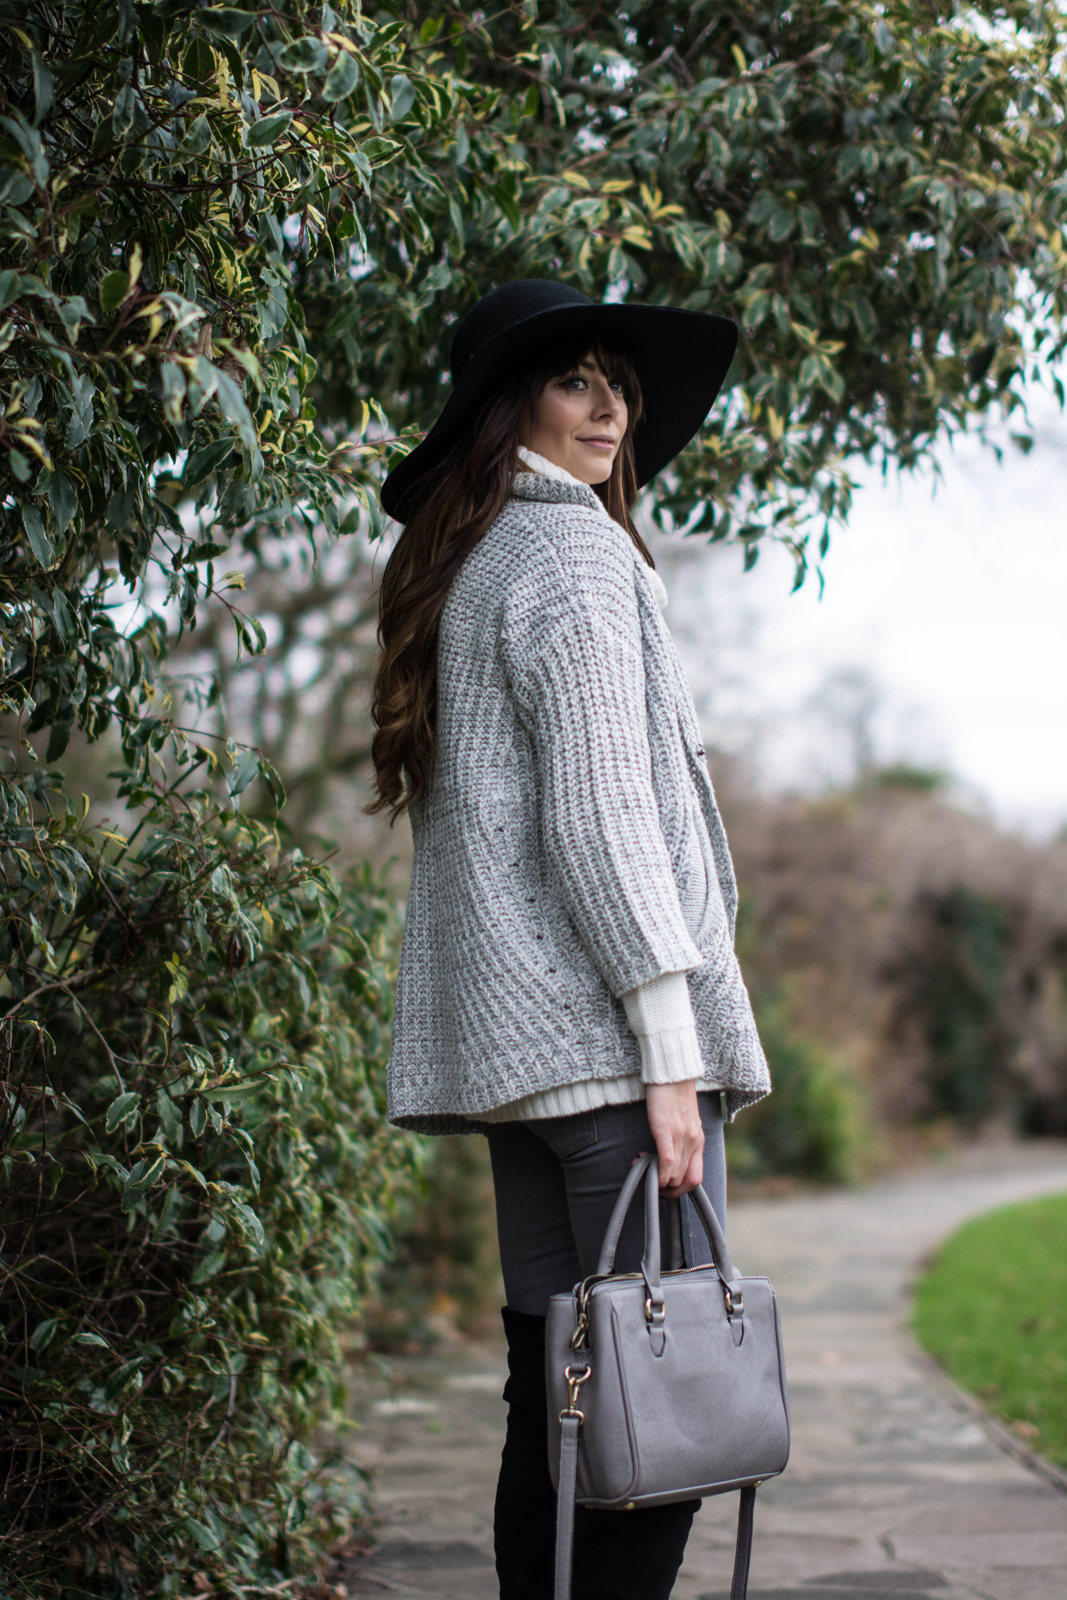 EJSTYLE - Topshop Floppy felt hat, Lookbook store cardigan knit, layering, layers, Next OTK boots, Grey skinny jeans, Grey zara mini city bag OOTD winter outfit